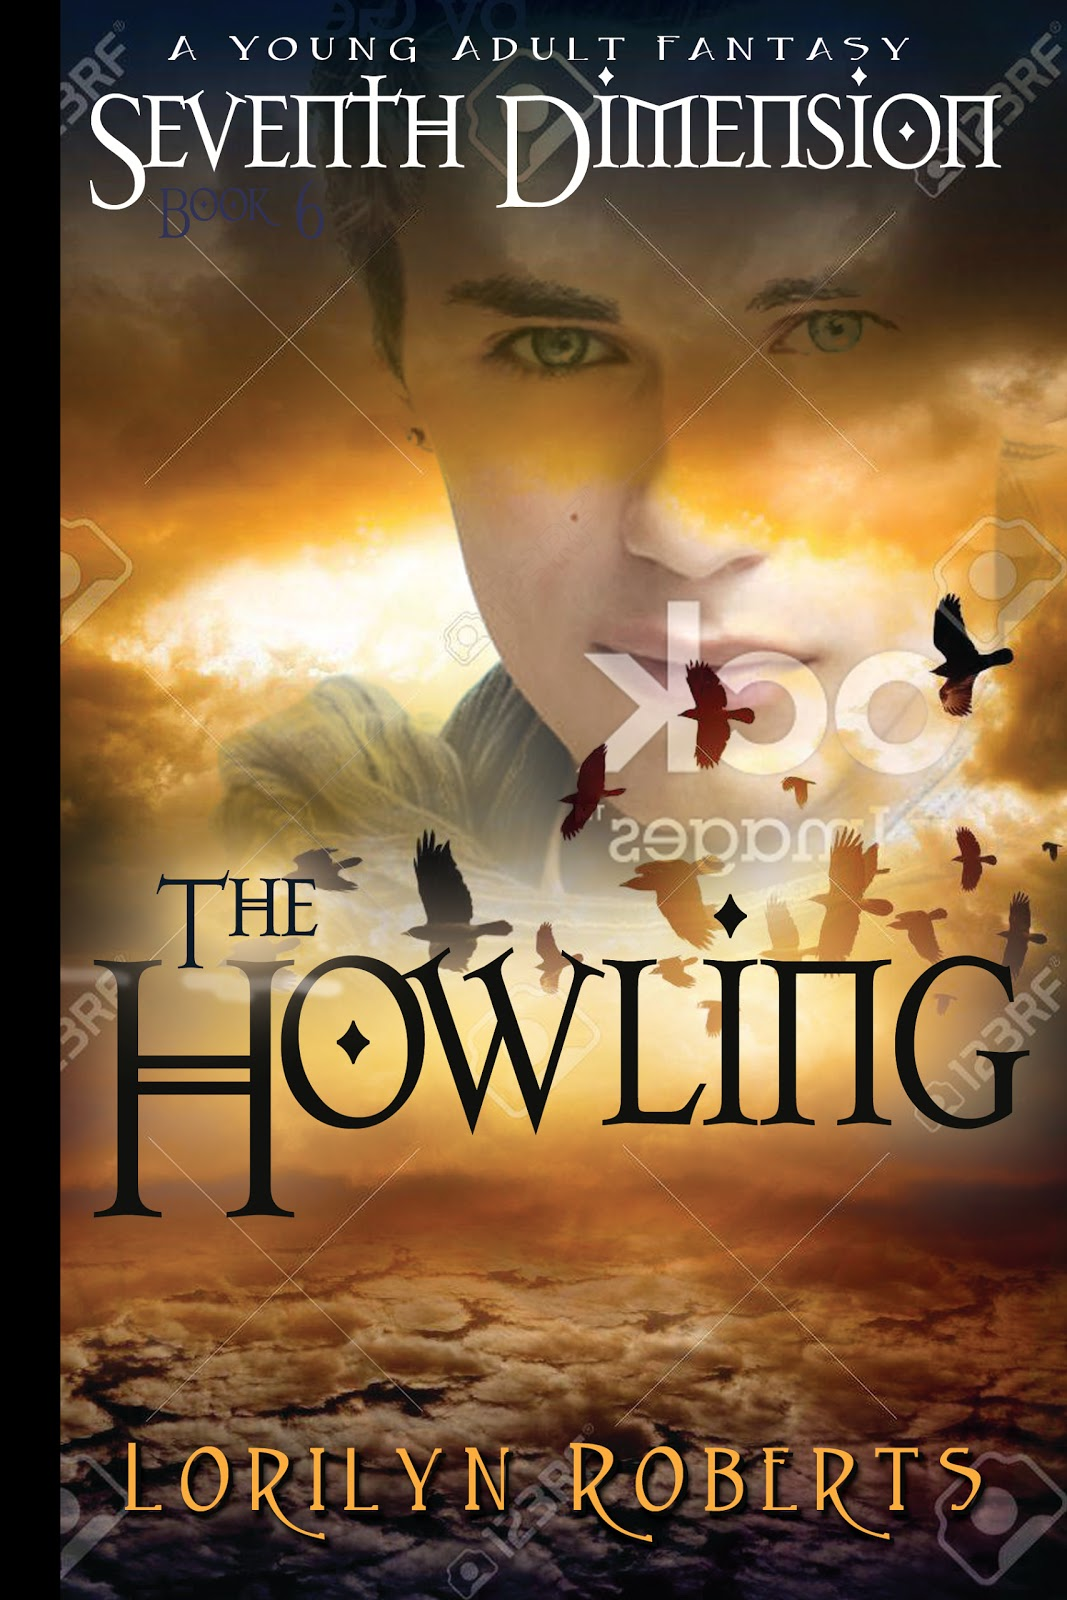 Young Adult Book Cover ~ Christian fantasy author lorilyn roberts which book cover do you